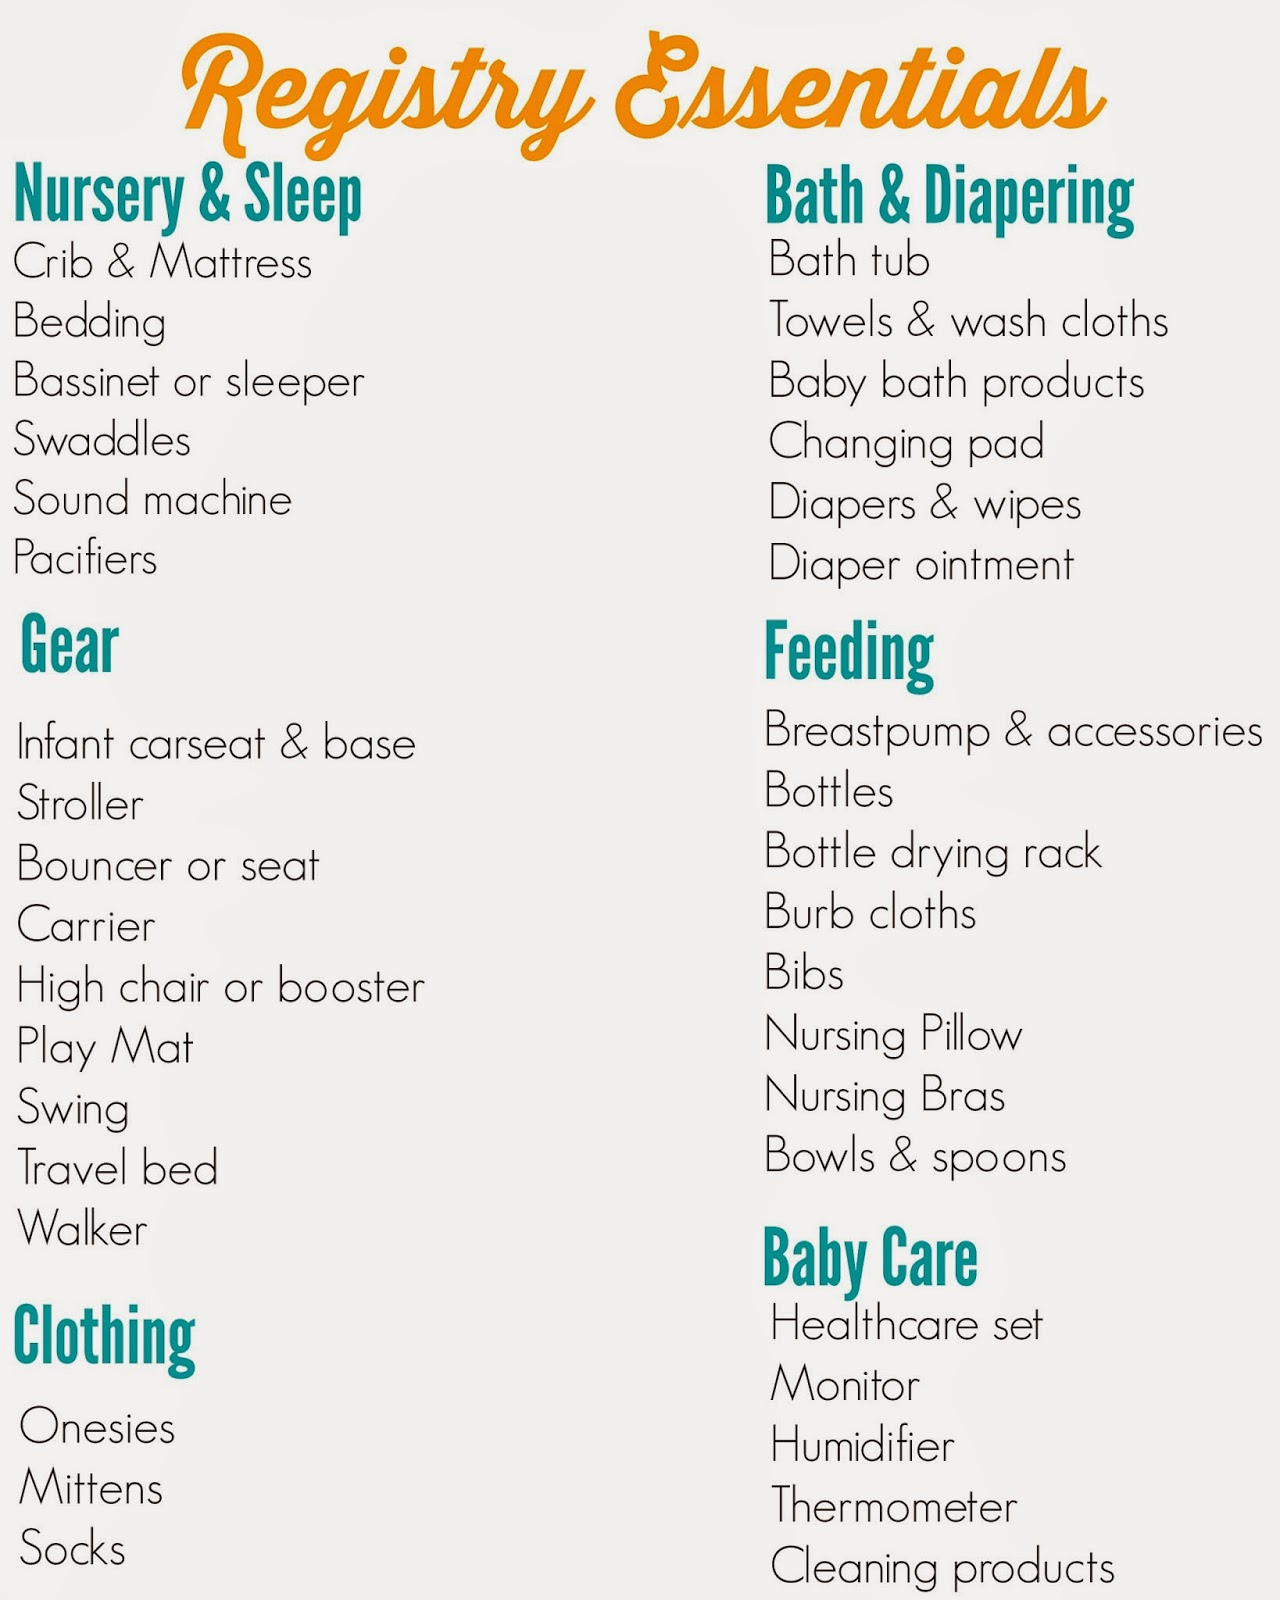 Checklist For Baby Shower Registry: The Chirping Moms: The Ultimate Registry Checklist